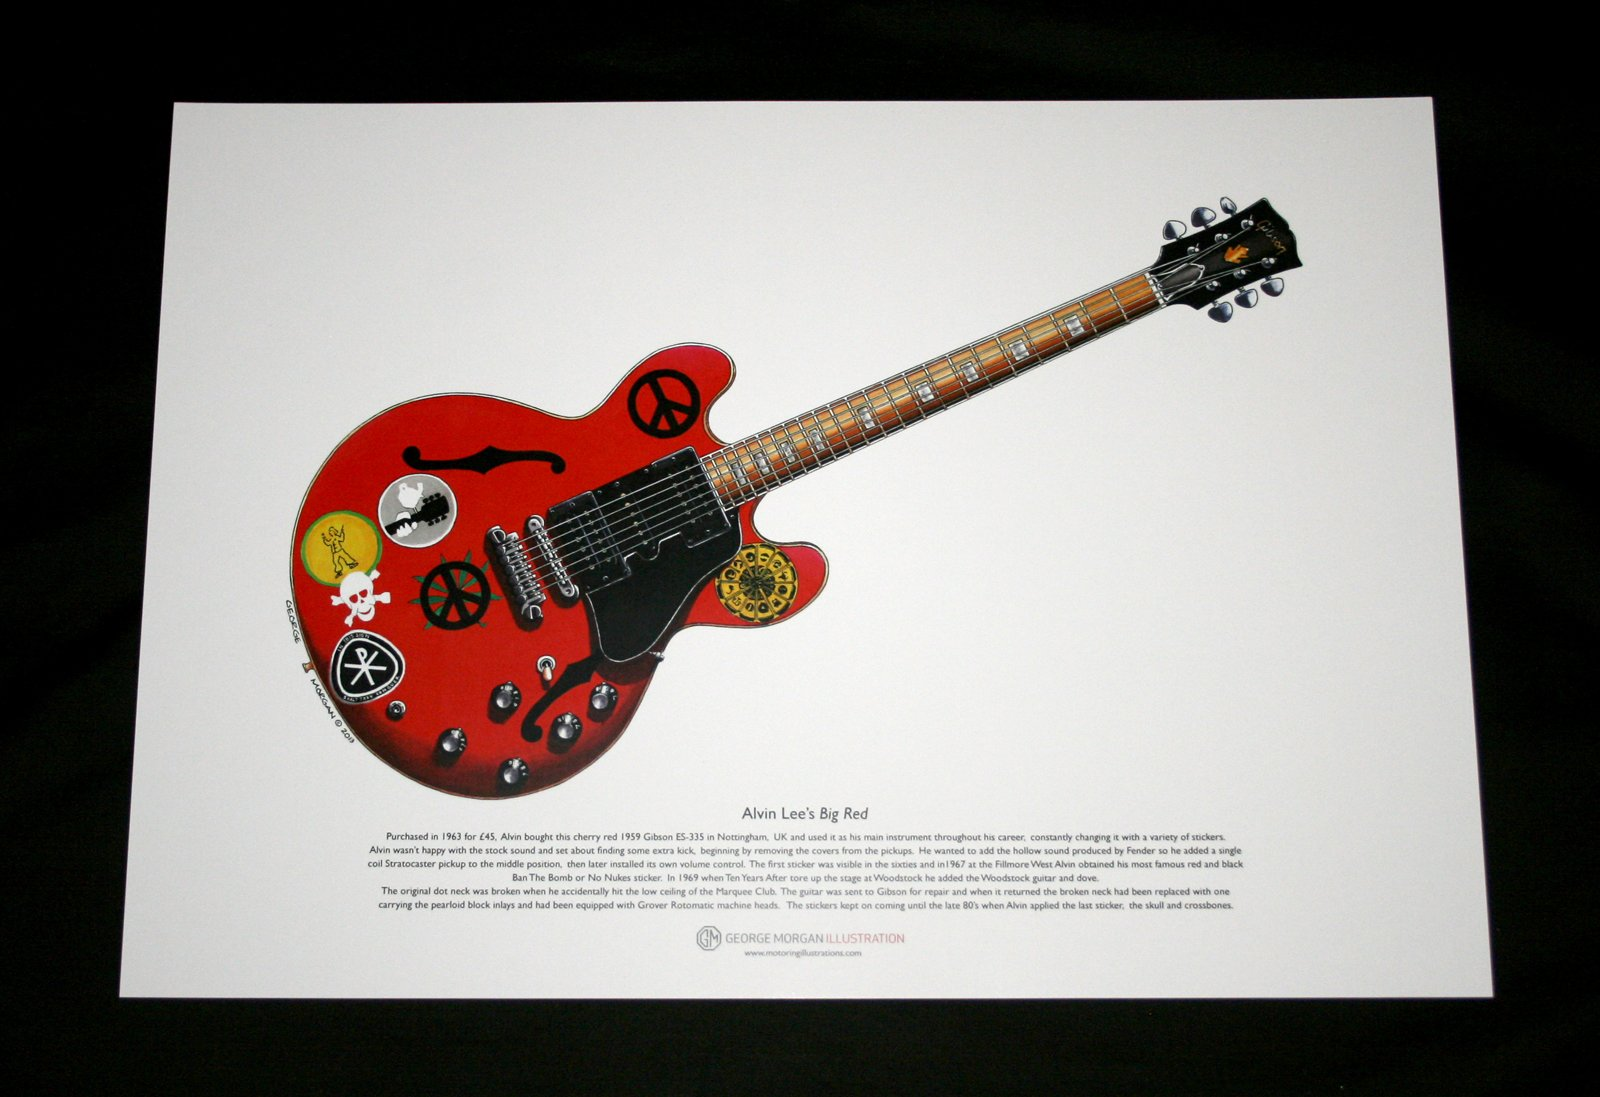 George Morgan Illustration Art Cartel de Gibson ES-335 Rojo Grande ...